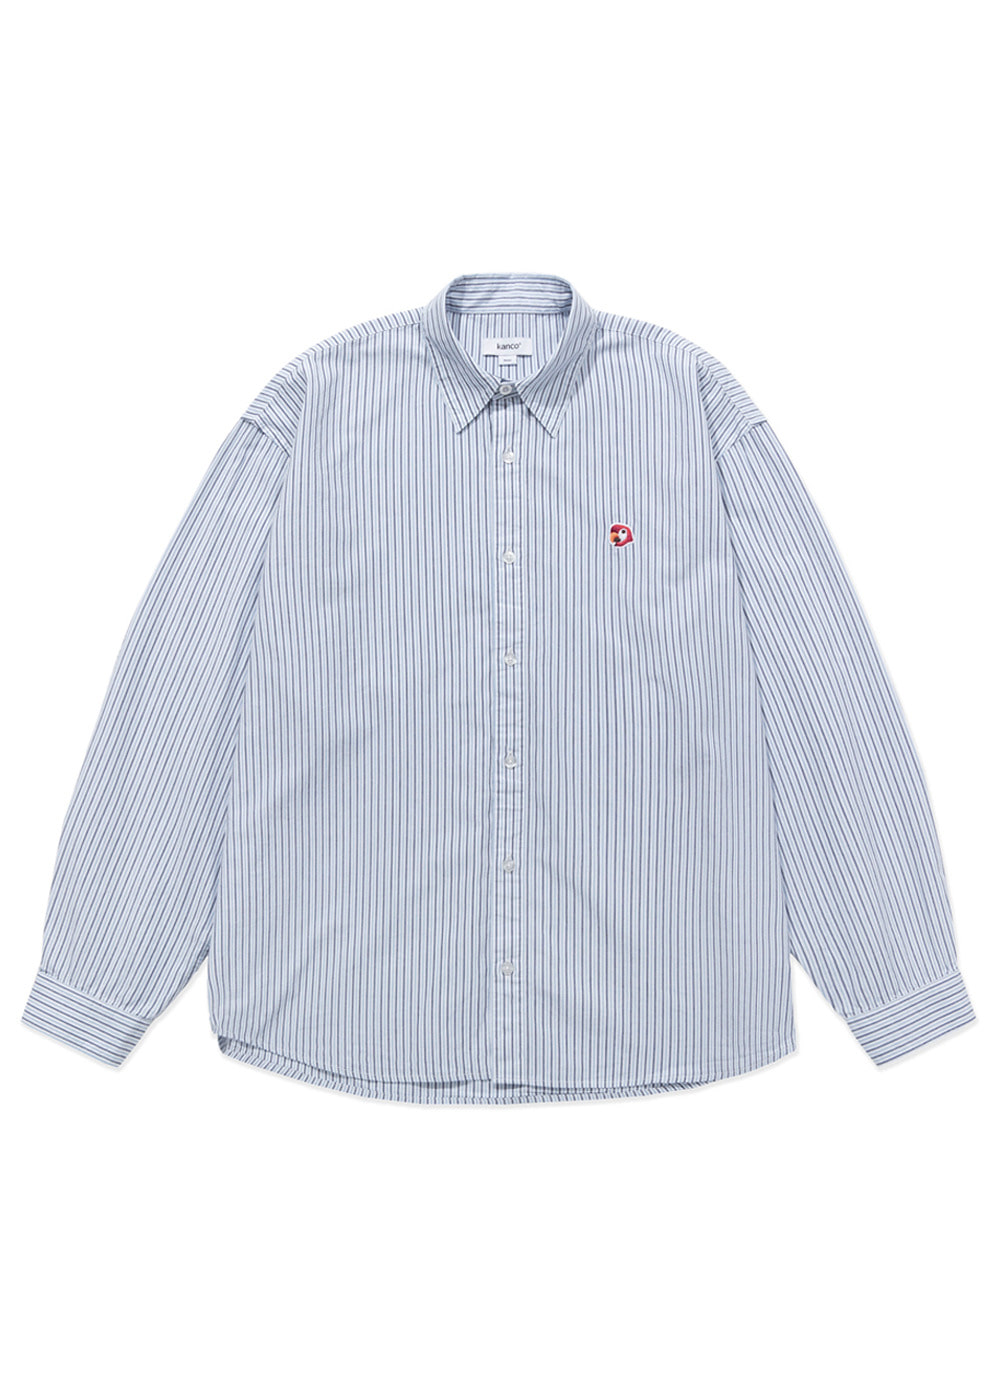 KANCO UNISEX SHIRT stripe